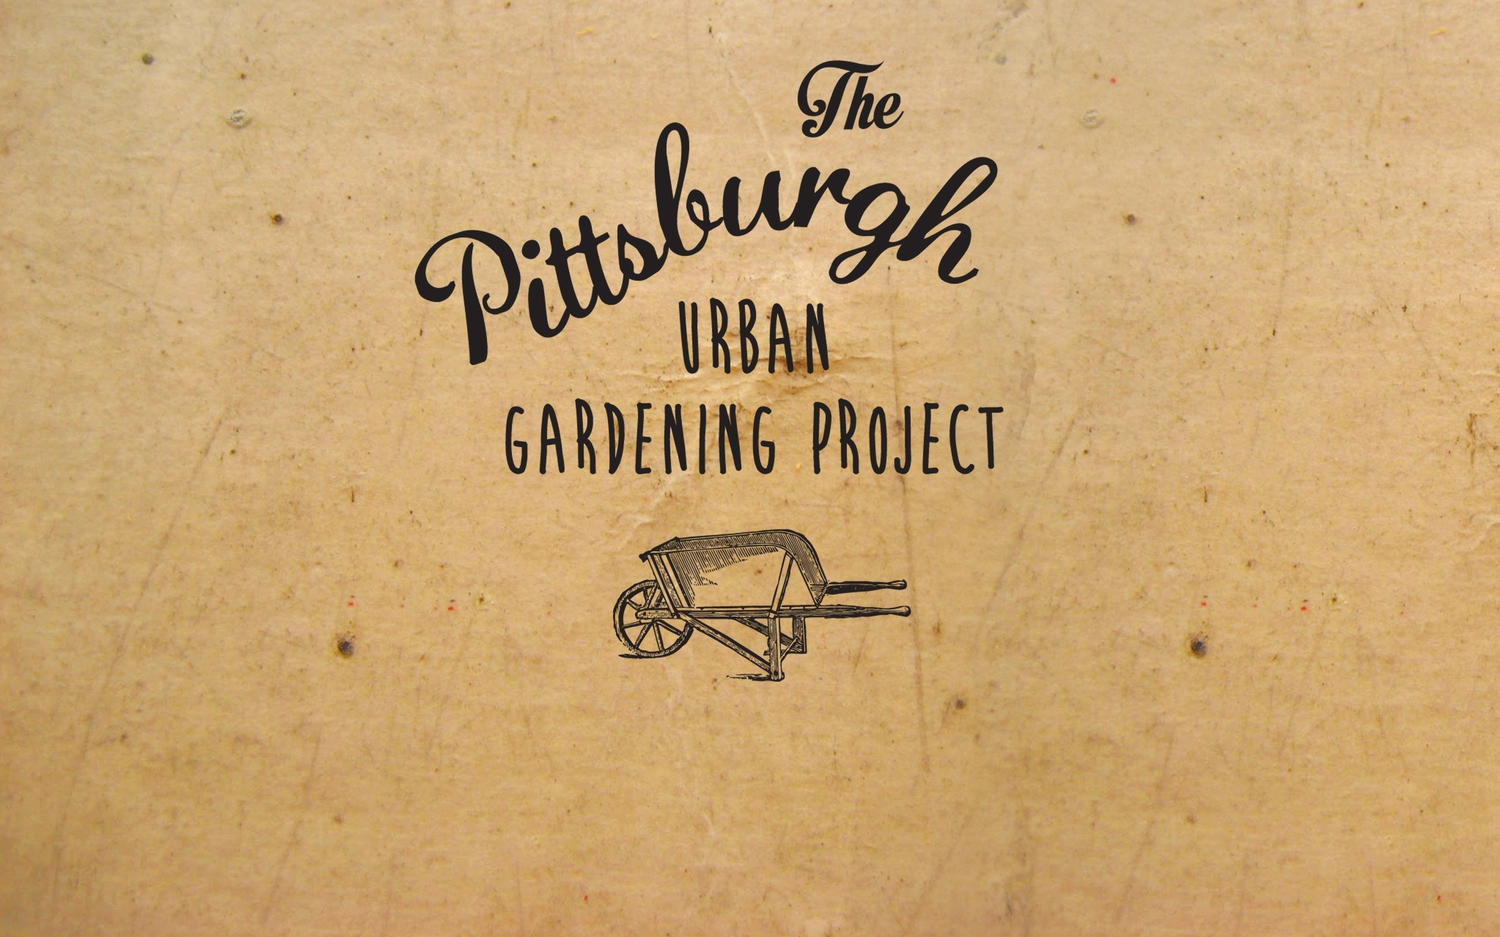 The Pittsburgh Urban Gardening Project